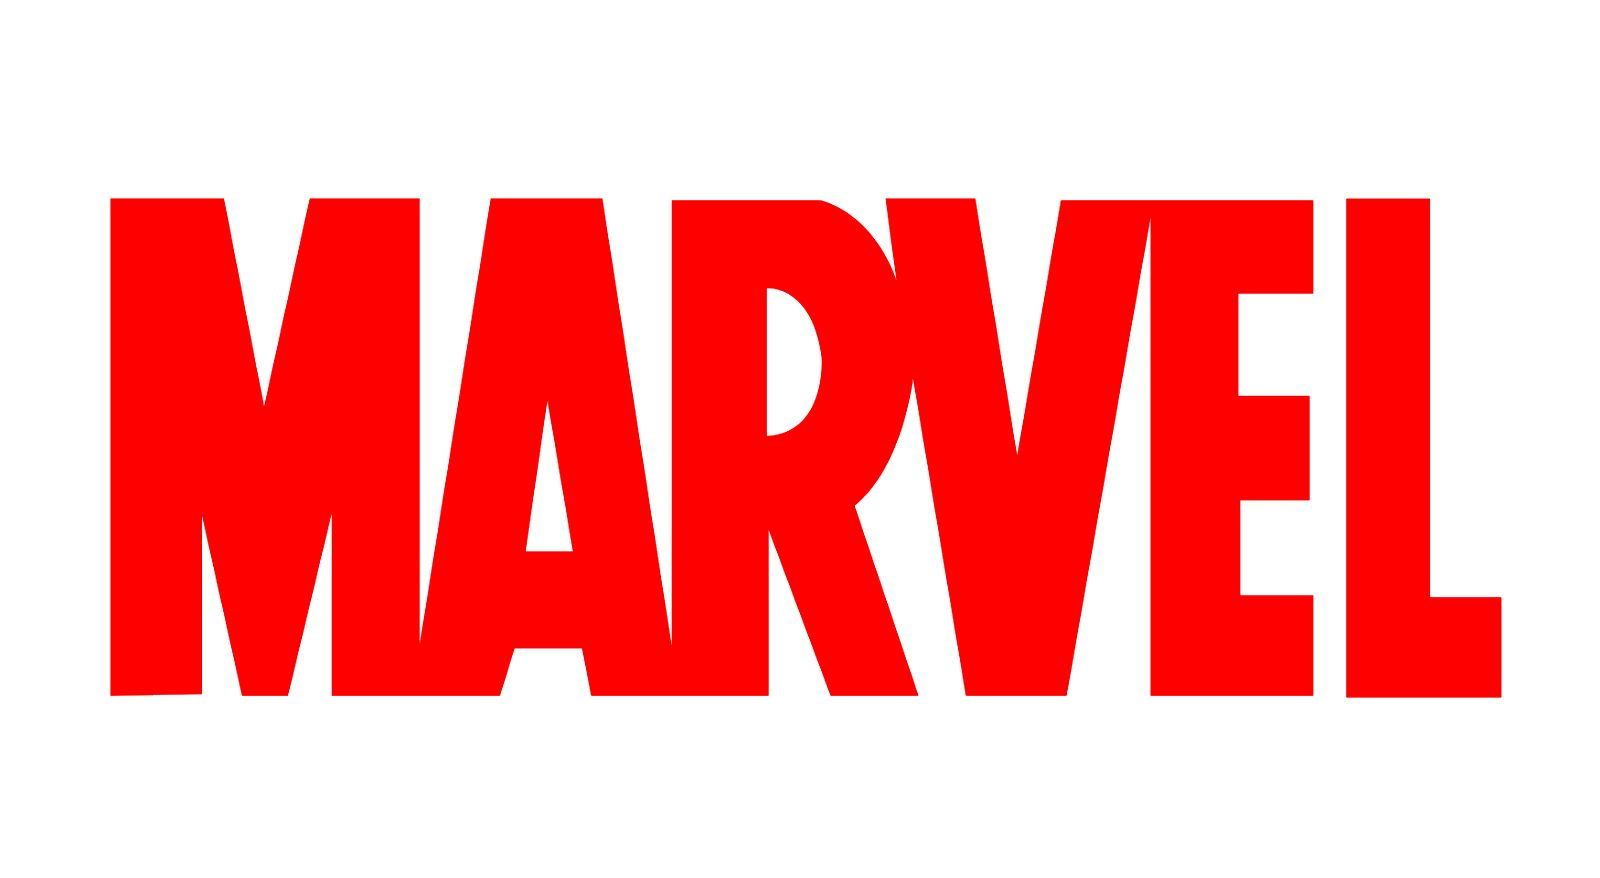 Marvel Logo - Font Marvel Logo | All logos world | Marvel, Marvel comics, Marvel logo